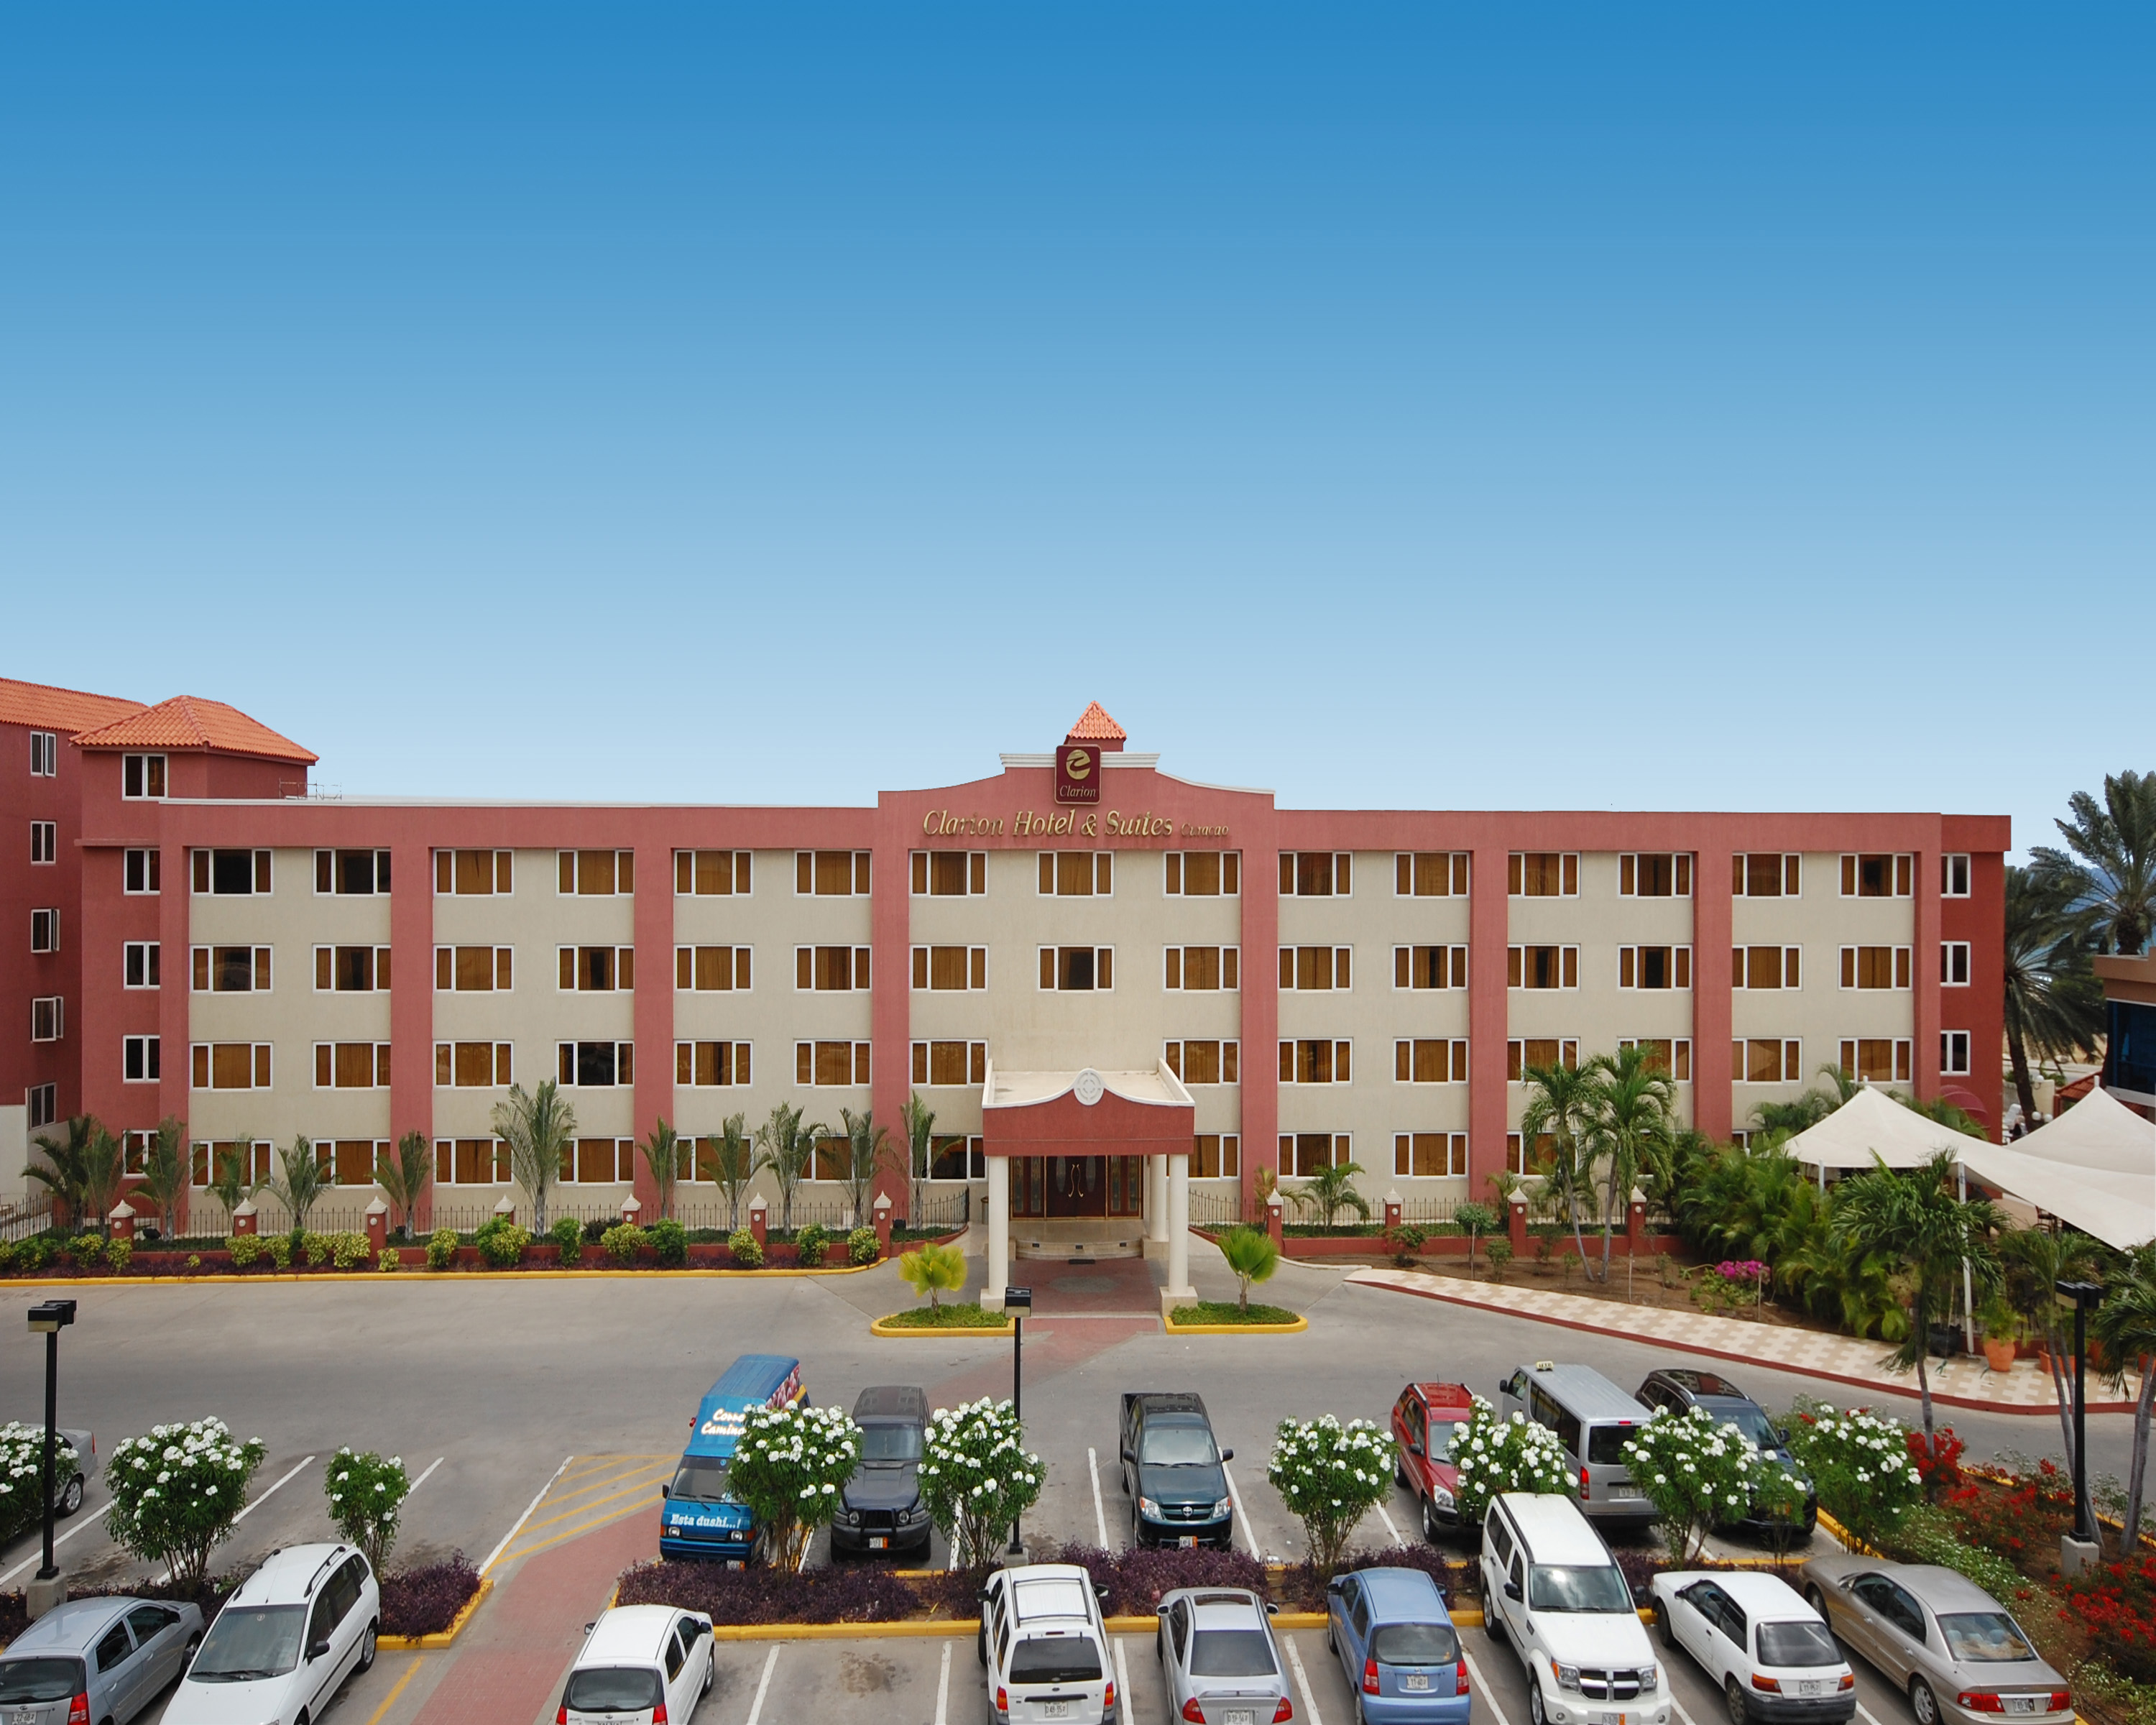 Clarion Hotel & Suites Curacao